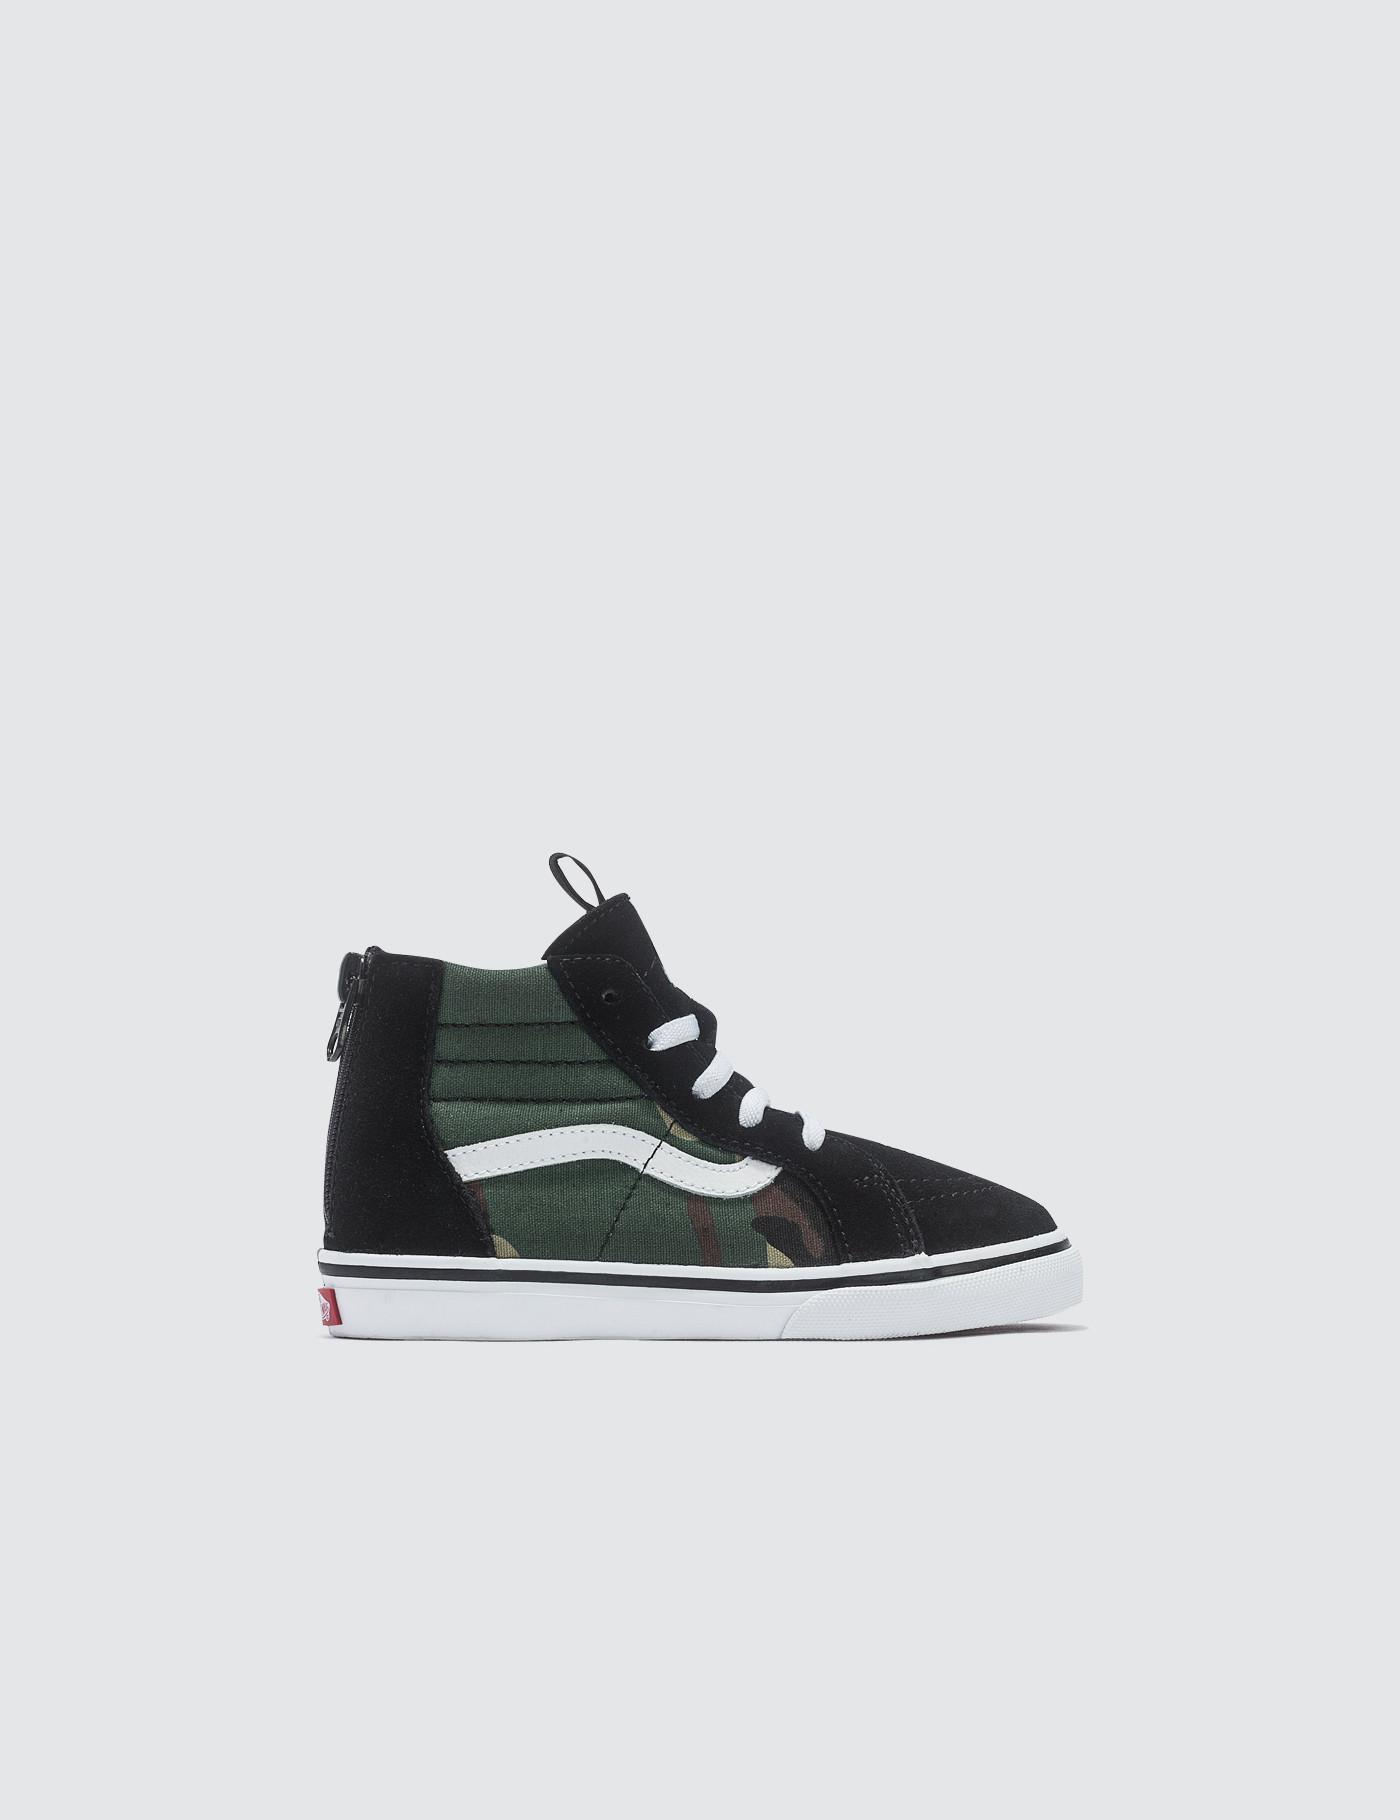 Lyst - Vans Sk8-hi Zip in Black for Men 4f15ac051